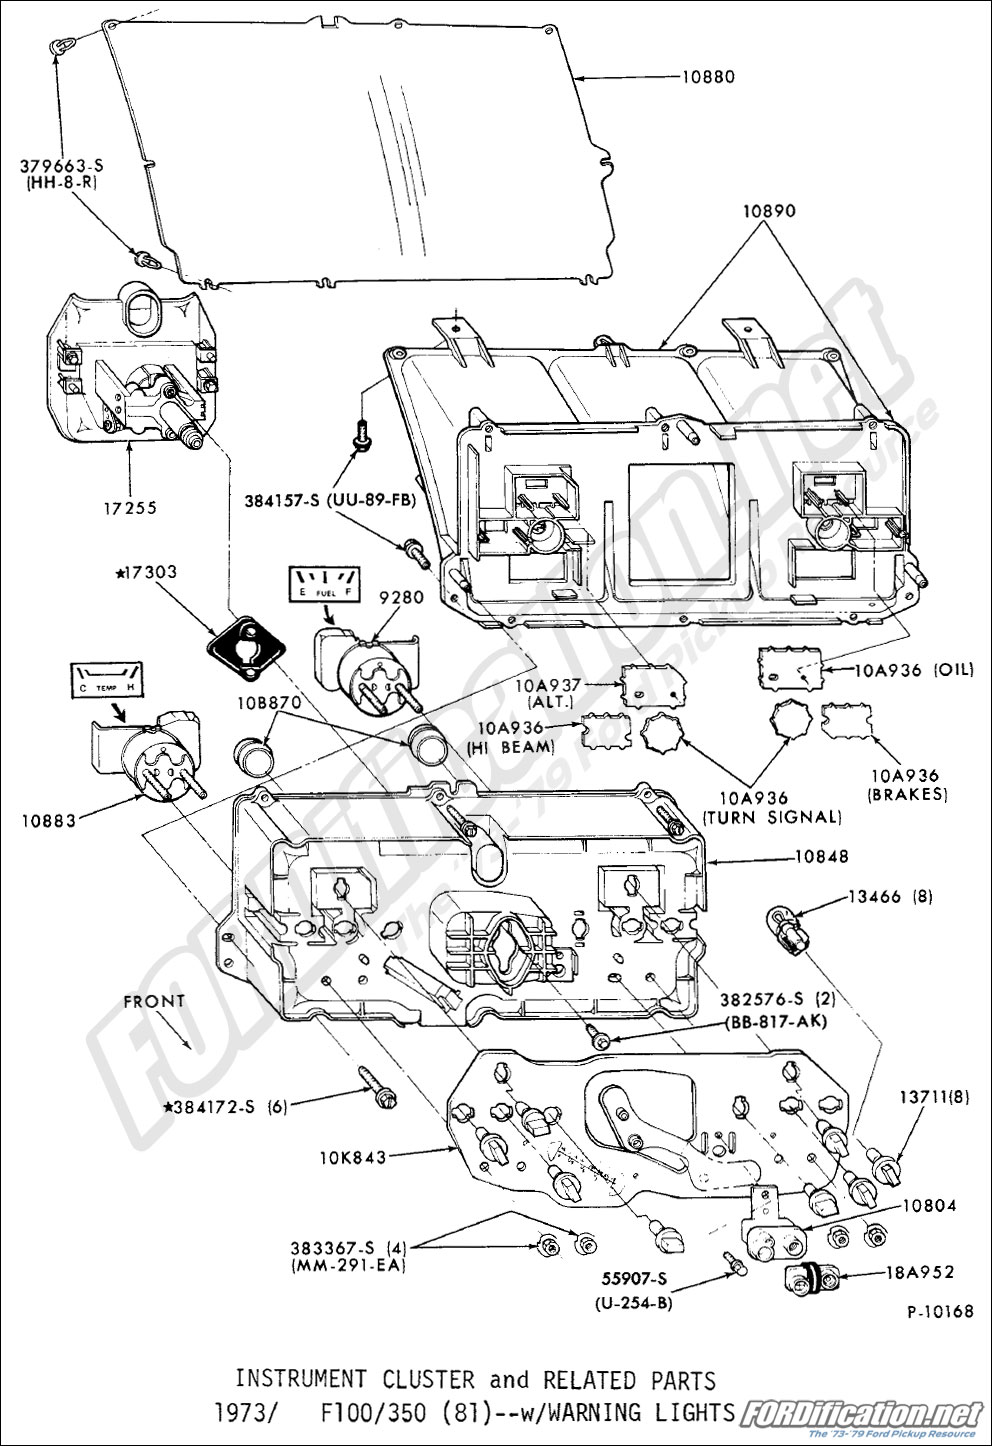 79 corvette wiring diagram for gauges 1968 corvette wiring diagram for starter ford truck part numbers instrument panel fordification net